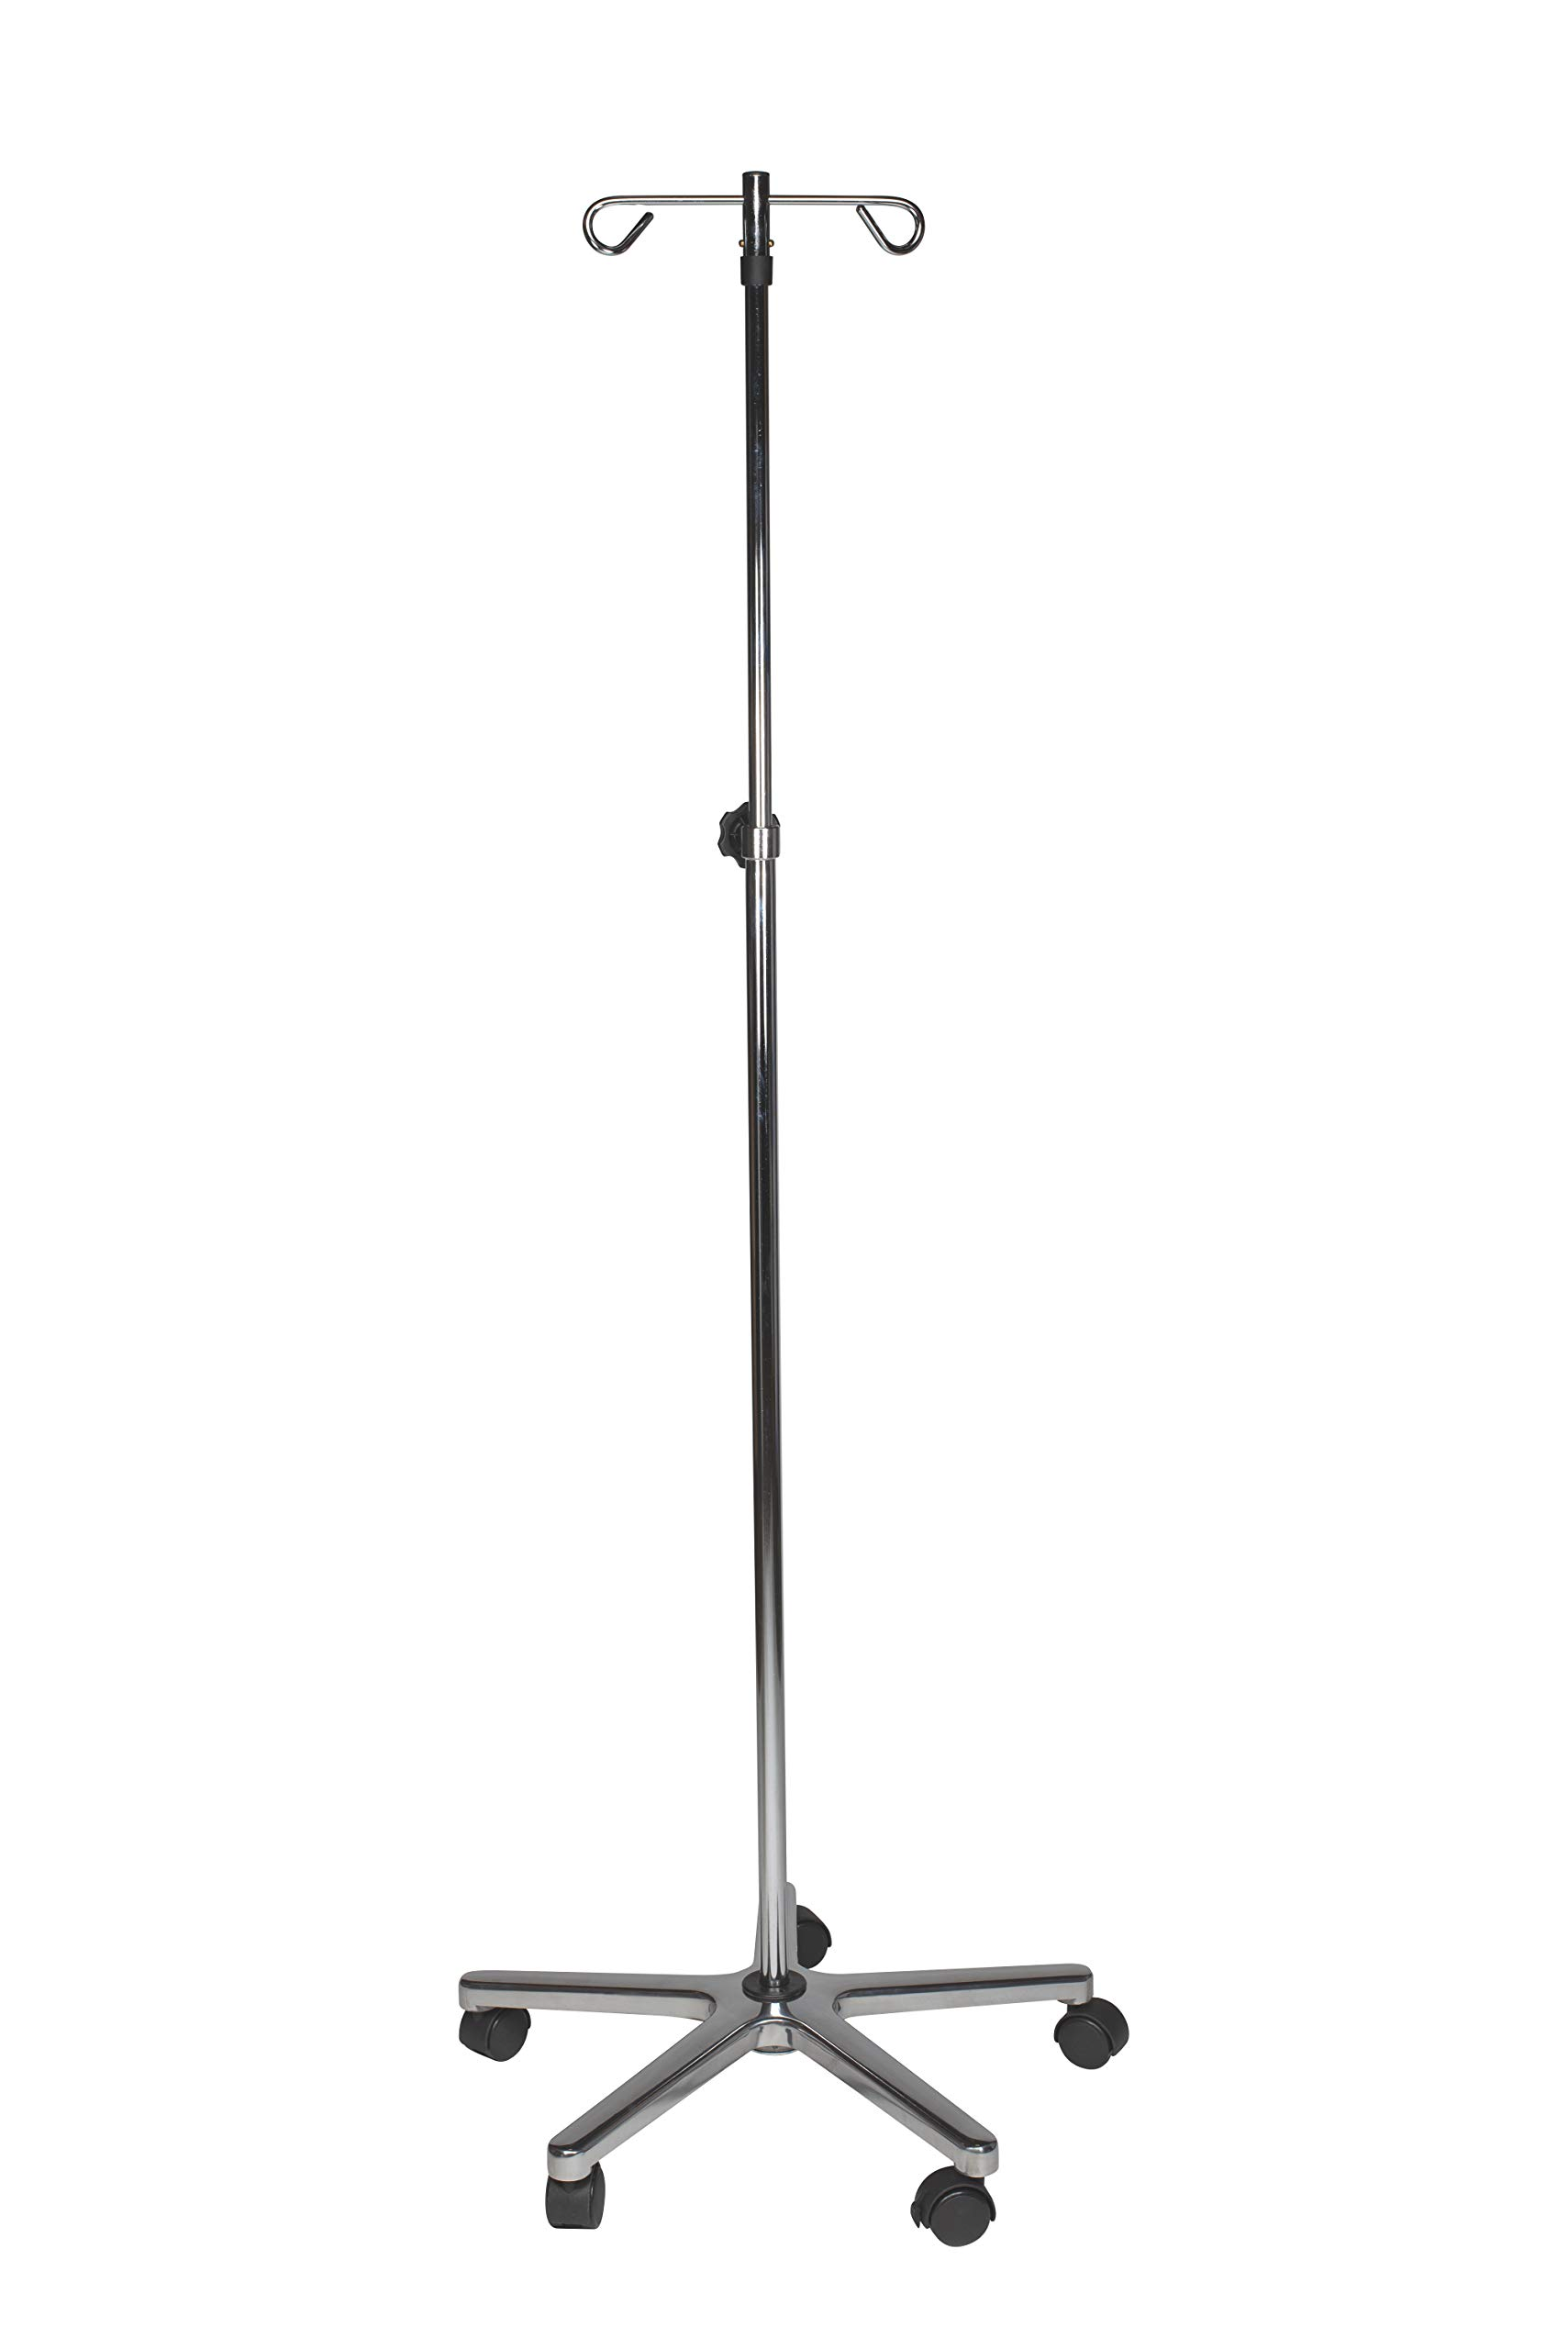 Deluxe IV Pole, 5 Legs, 2 Hook, Chrome (Pack of 2)